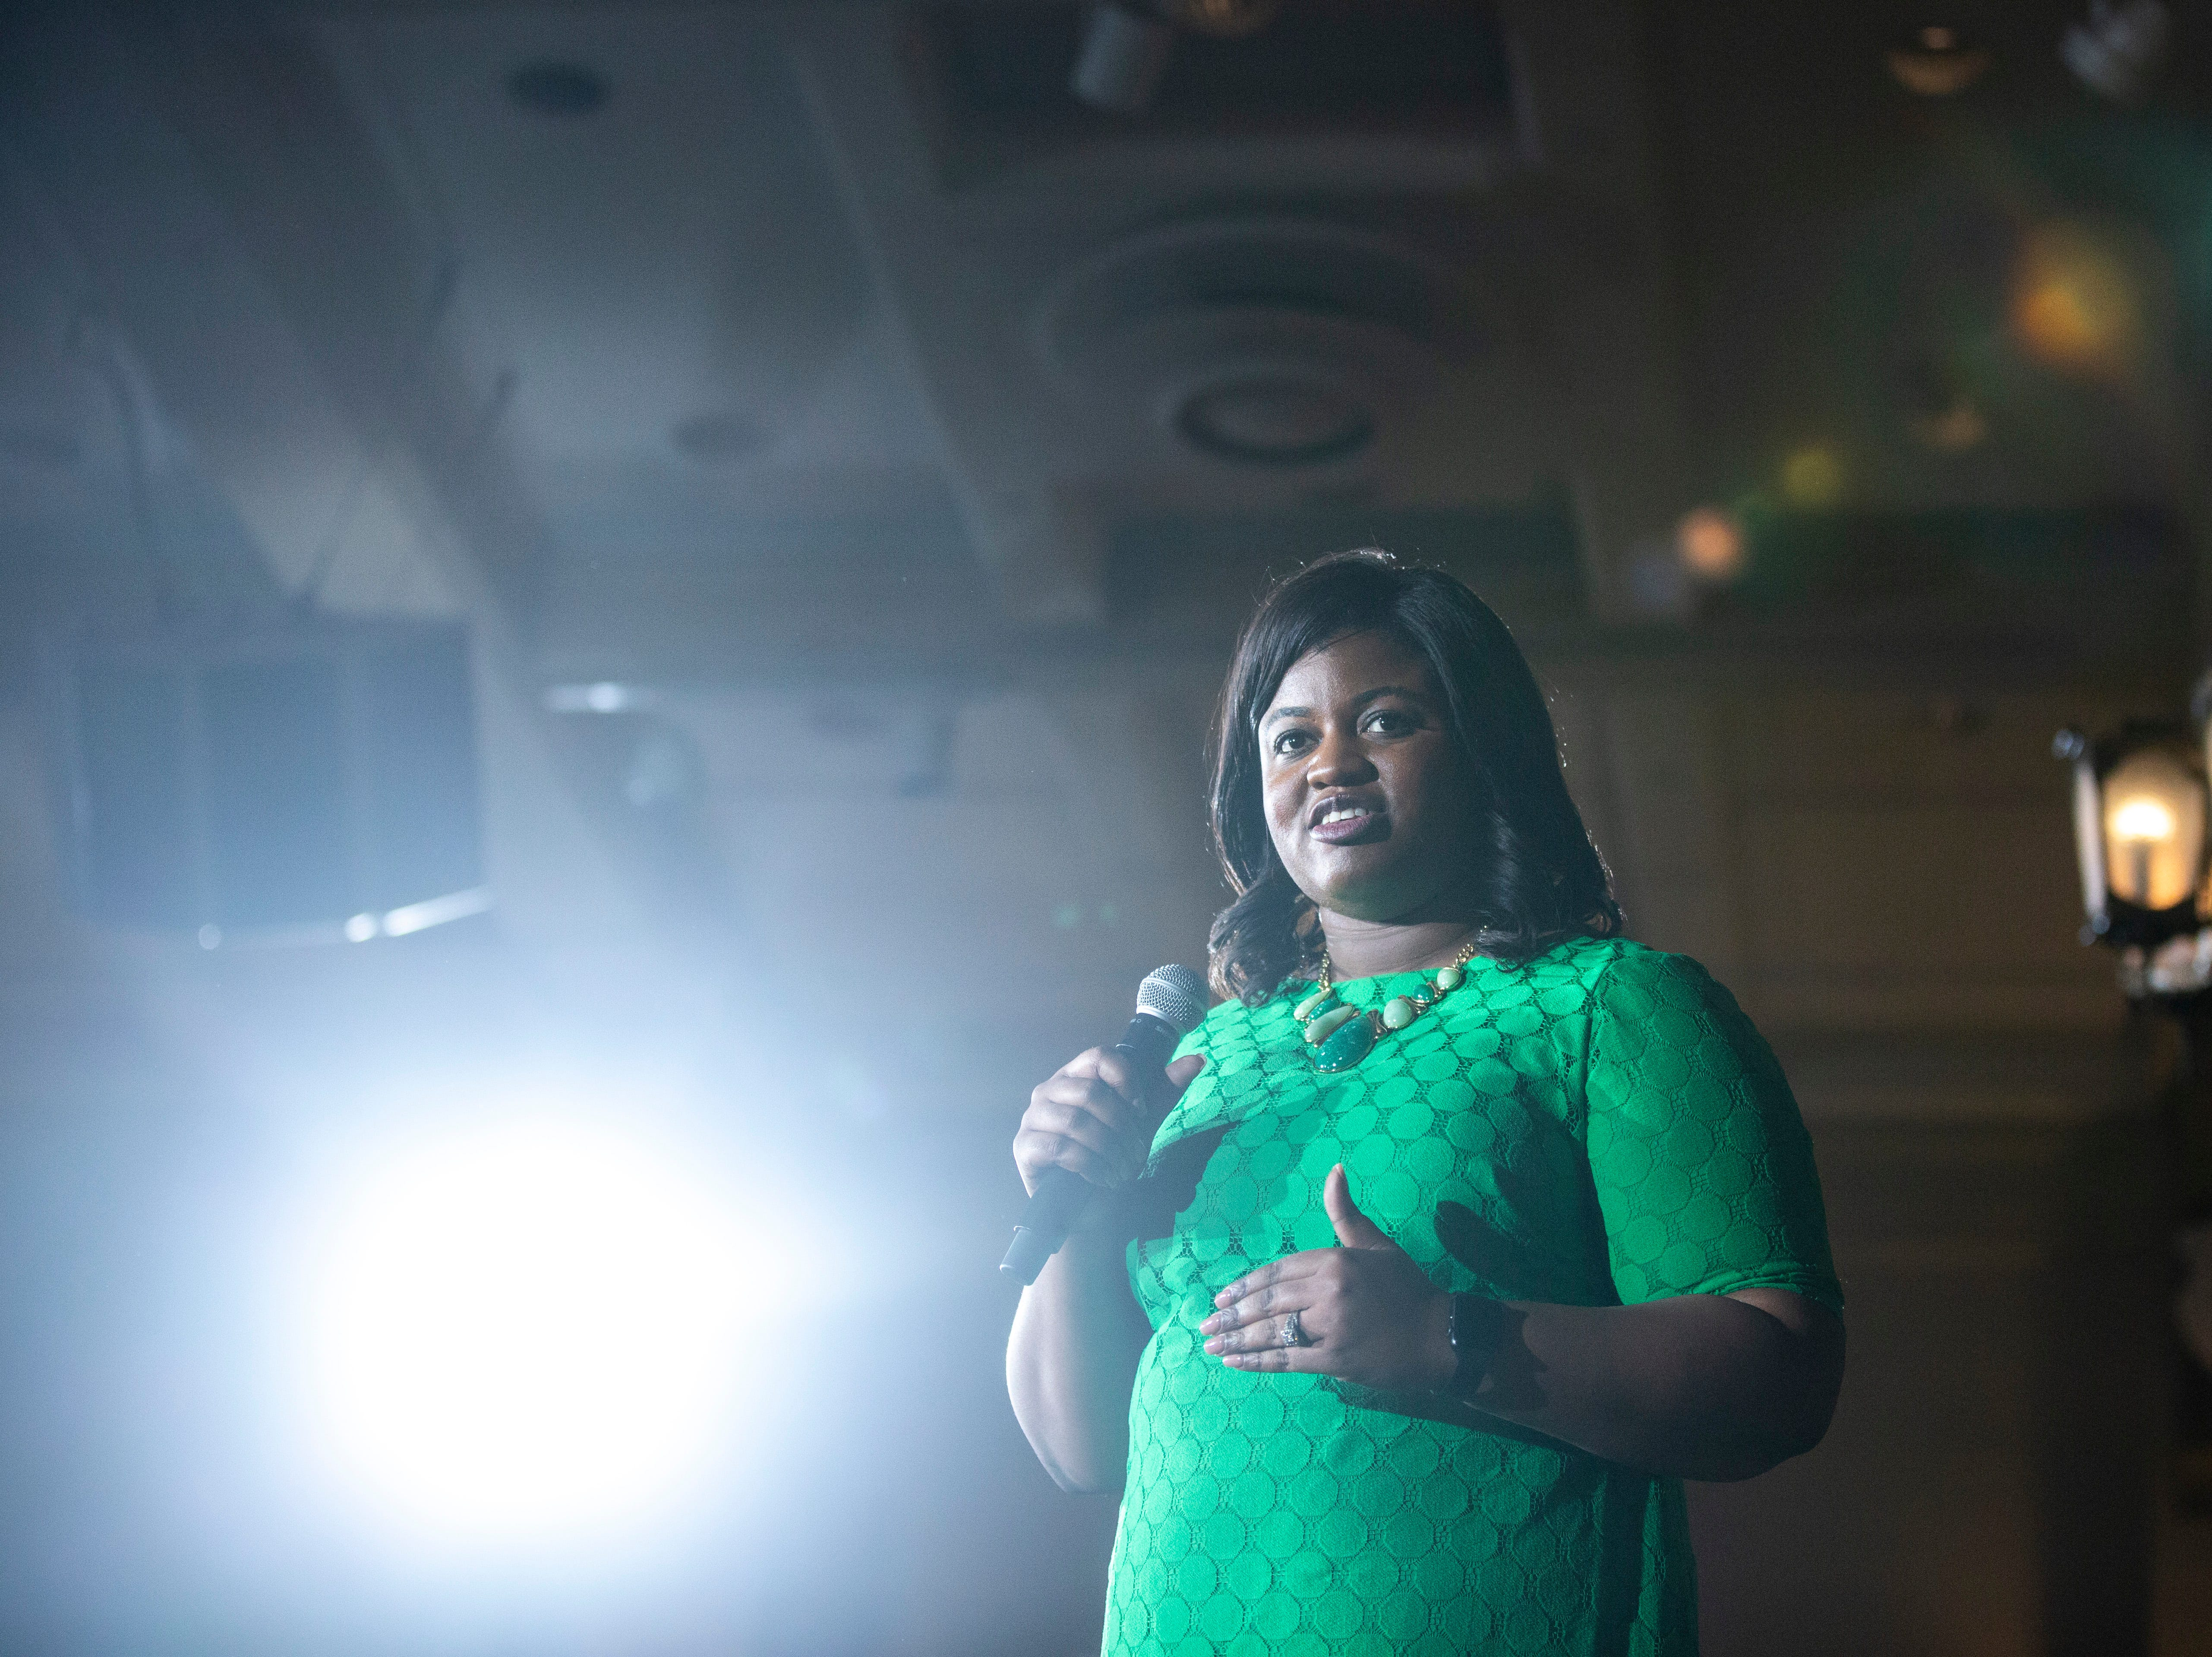 Deidre DeJear speaks during a town hall event on Wednesday, April 10, 2019, at the Iowa Memorial Union main lounge in Iowa City, Iowa.